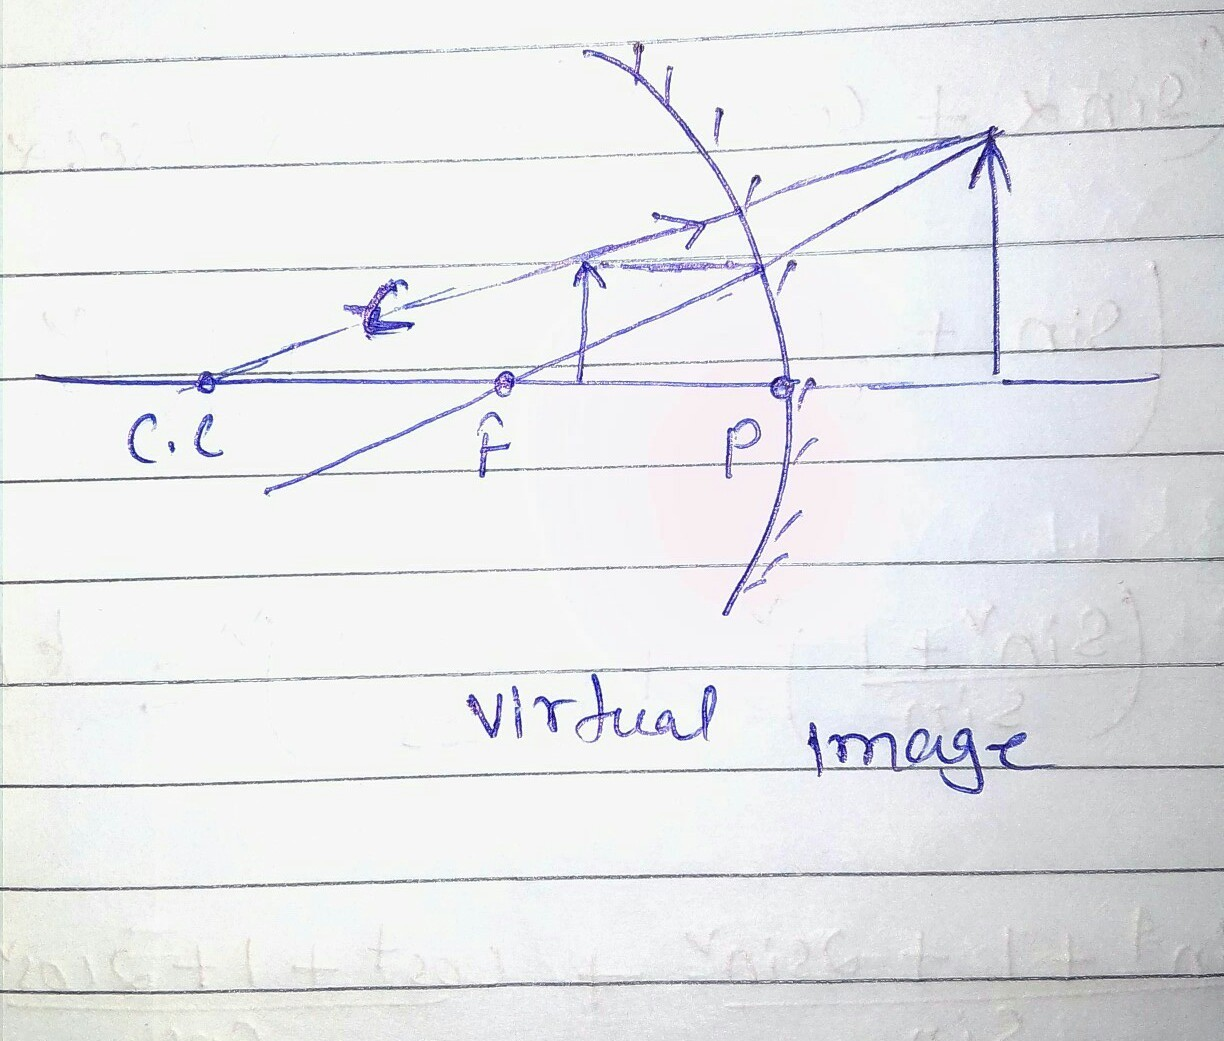 Draw The Ray Diagram For Convergent Mirror When Object Is